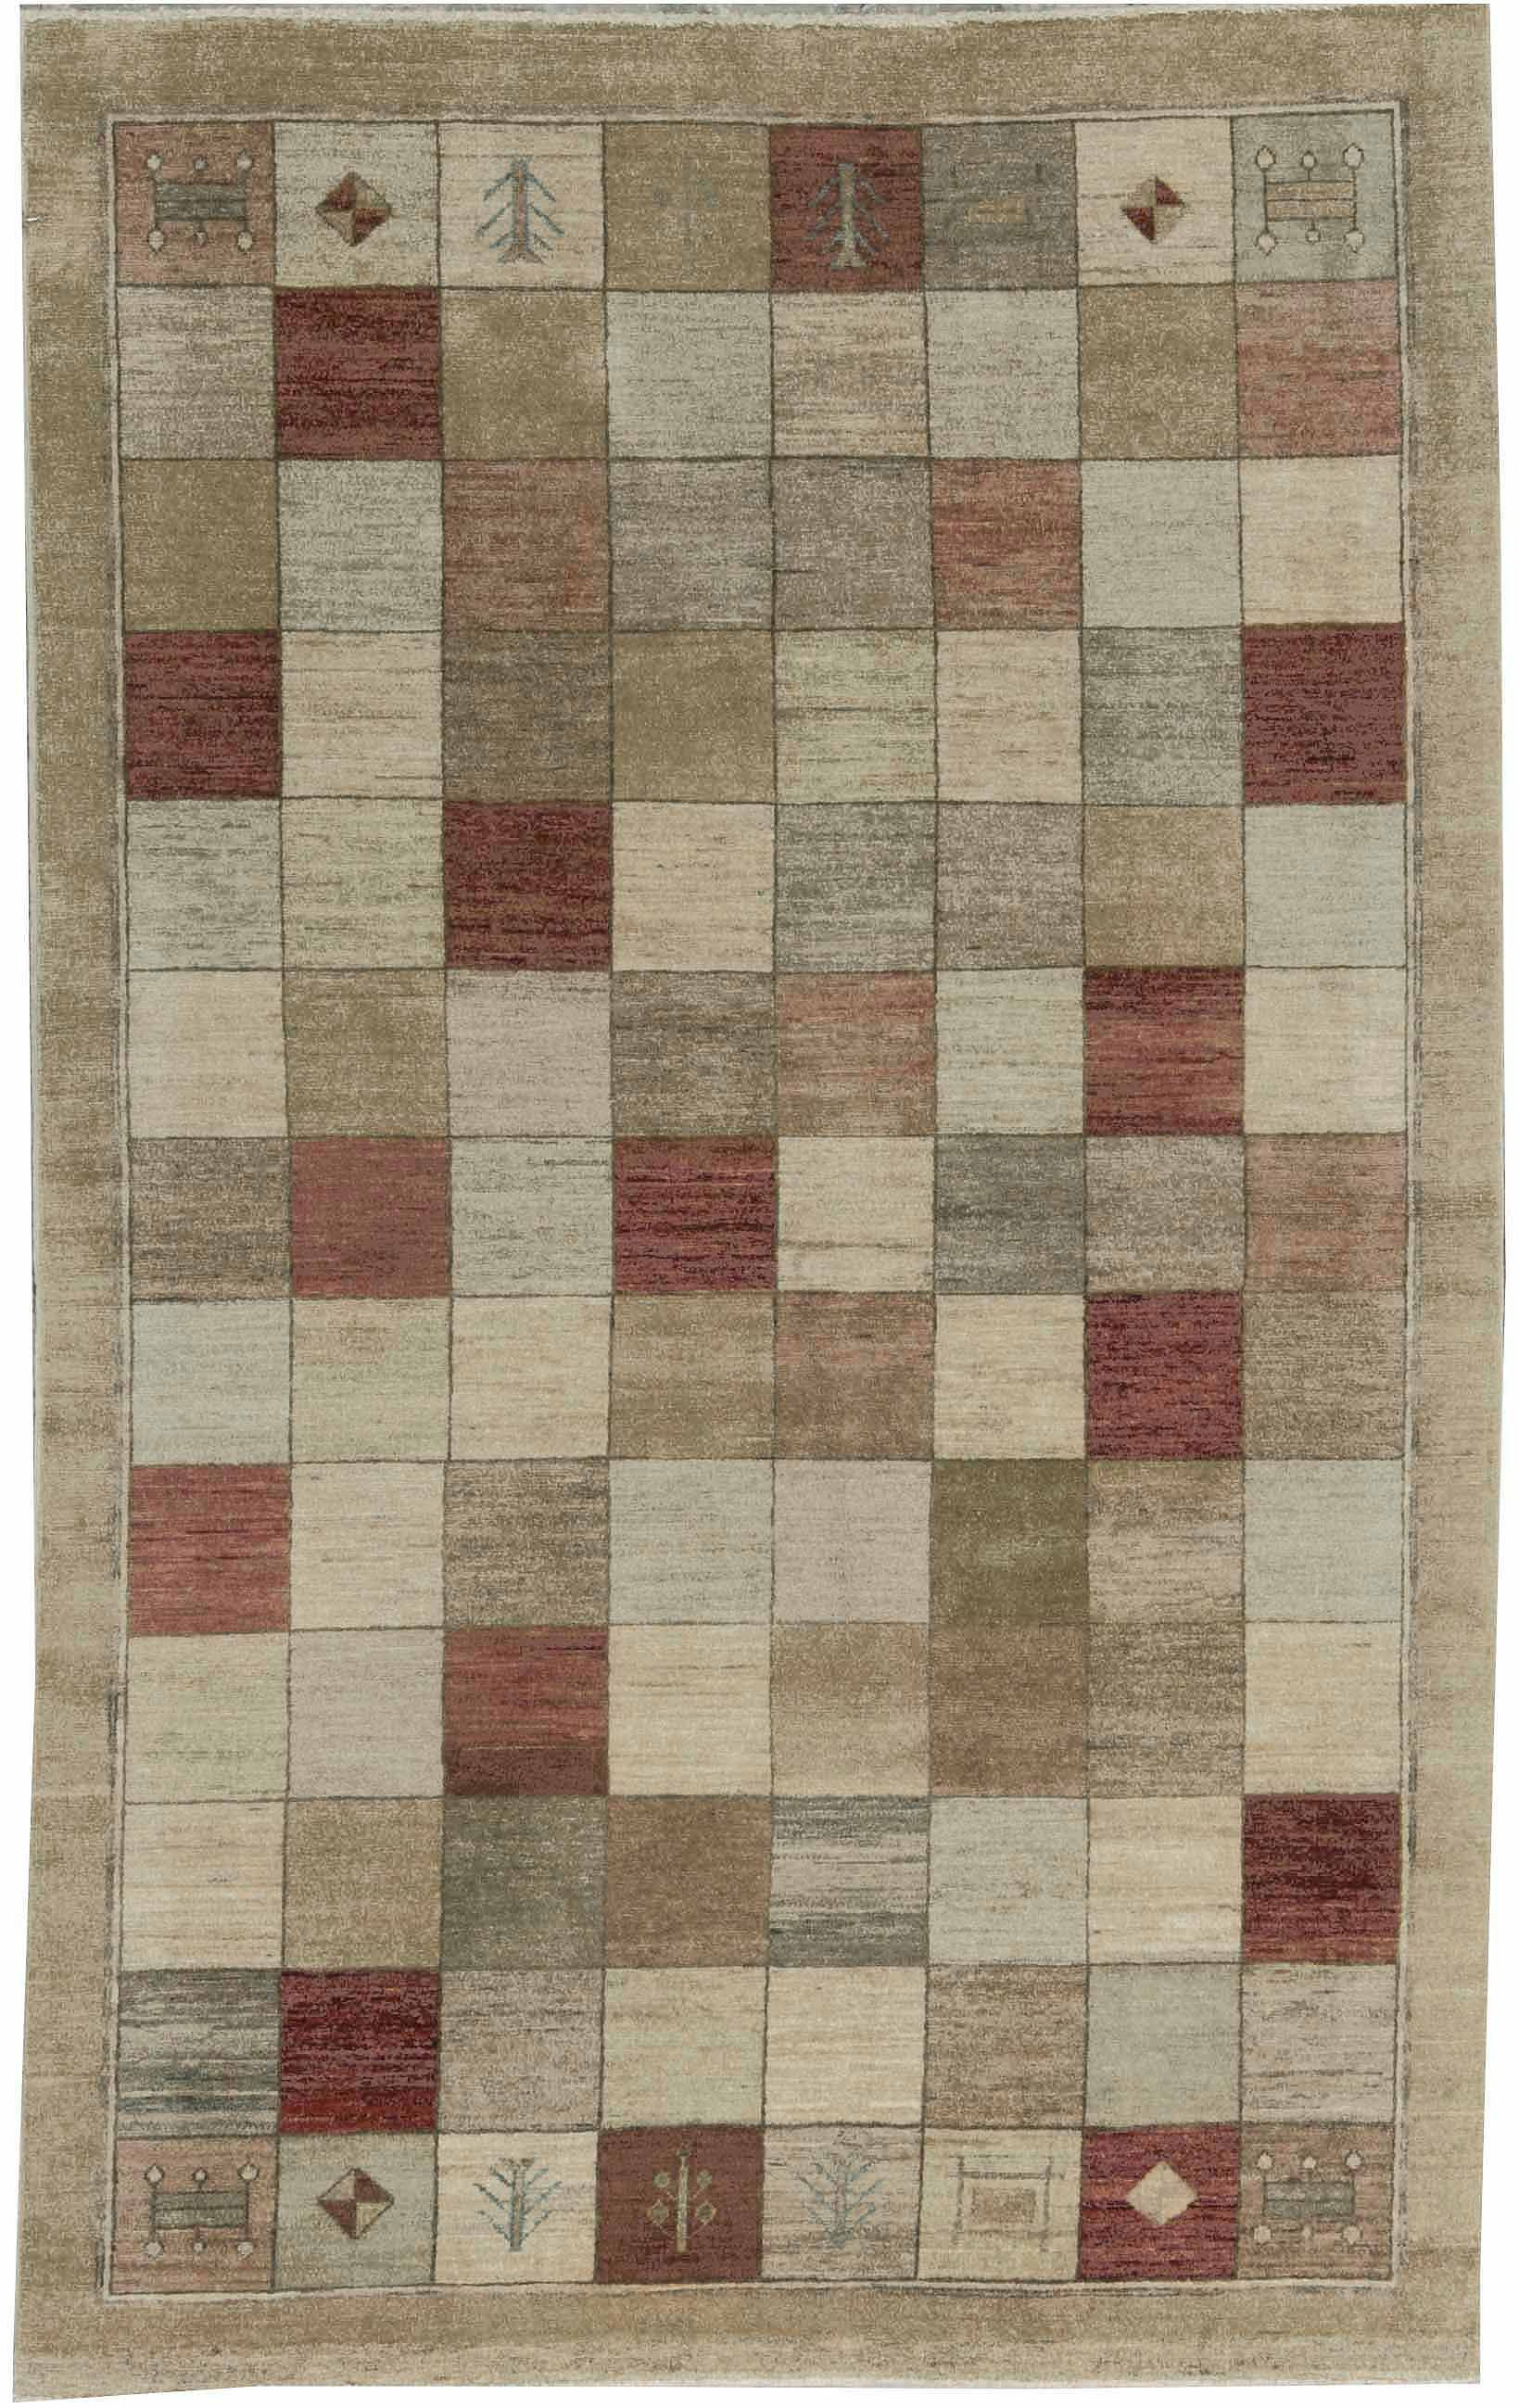 Contemporary Hand Woven Rug 5 4 X 8 7 Woven Rug Rugs Hand Weaving